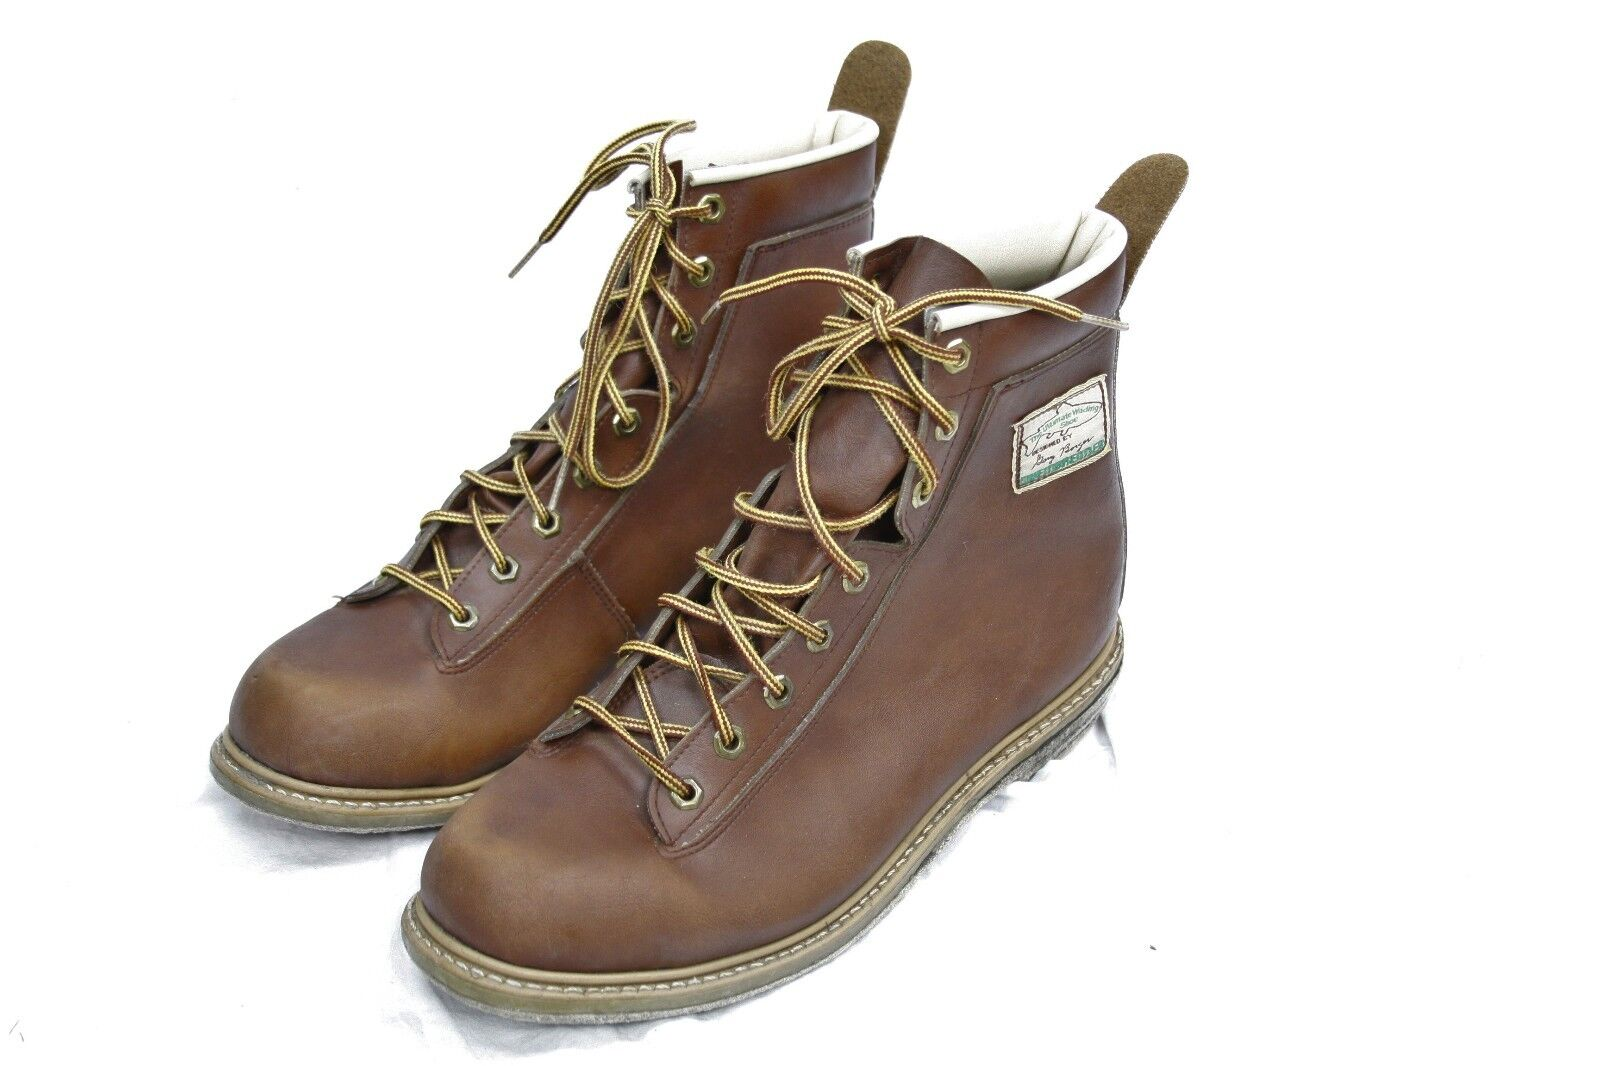 Designed by Dany Berger Weinbrenner Men's Non Slip Work Boots US 8.5  USA made